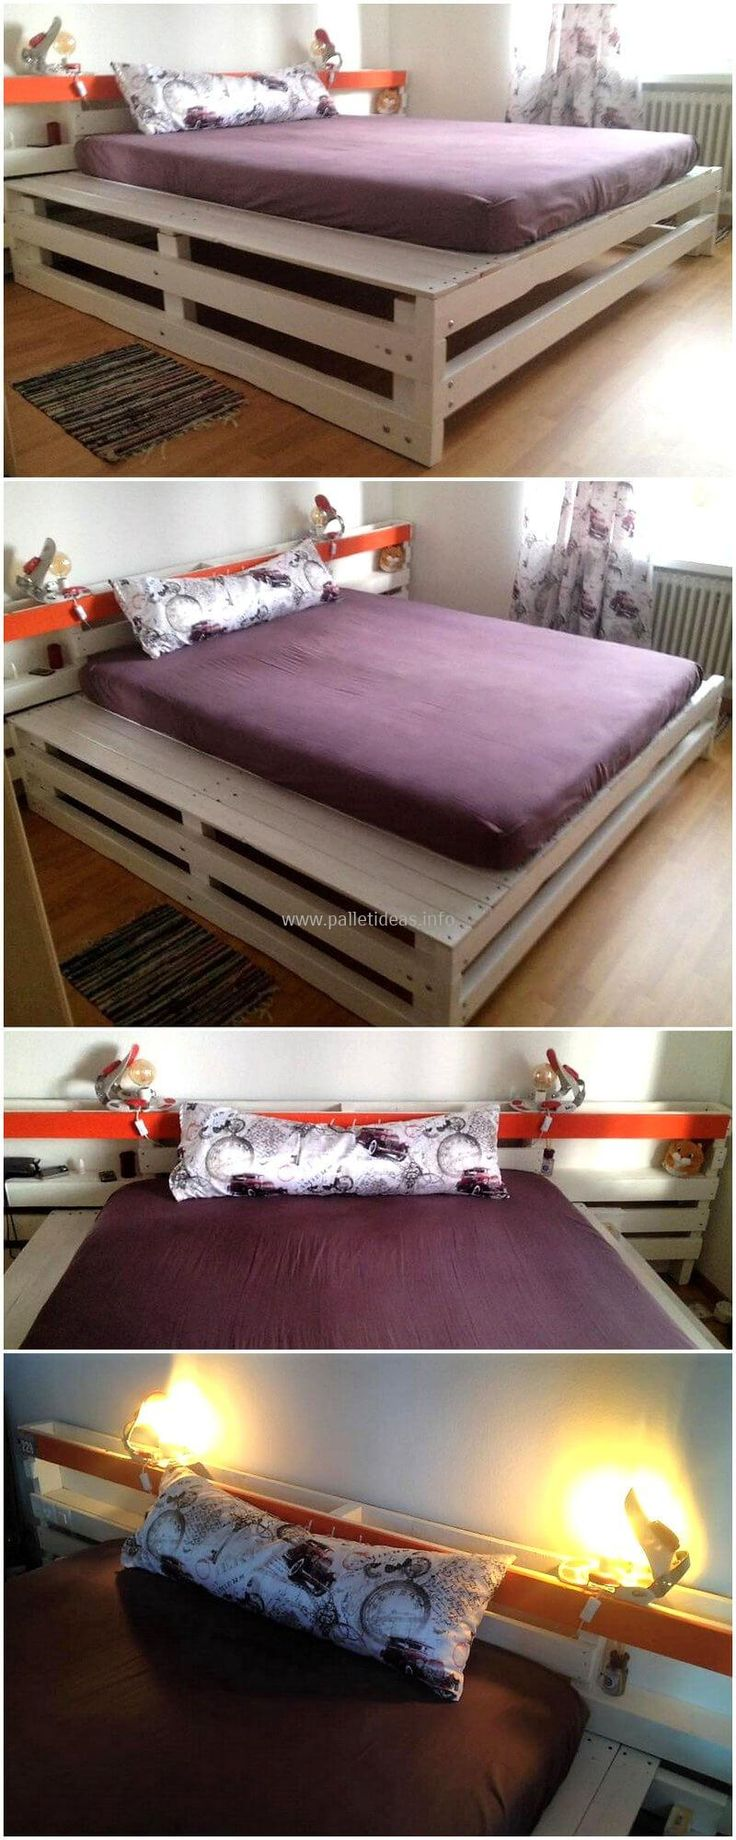 This is one of most needed and important item in your daily life is your sleeping bed. This is stylish reused pallets wood bed crafted uniquely to fulfill the requirements of charming wood furniture at your home. This modern design bed is crafted from recycling wood pallets, so cheap in cost as well.